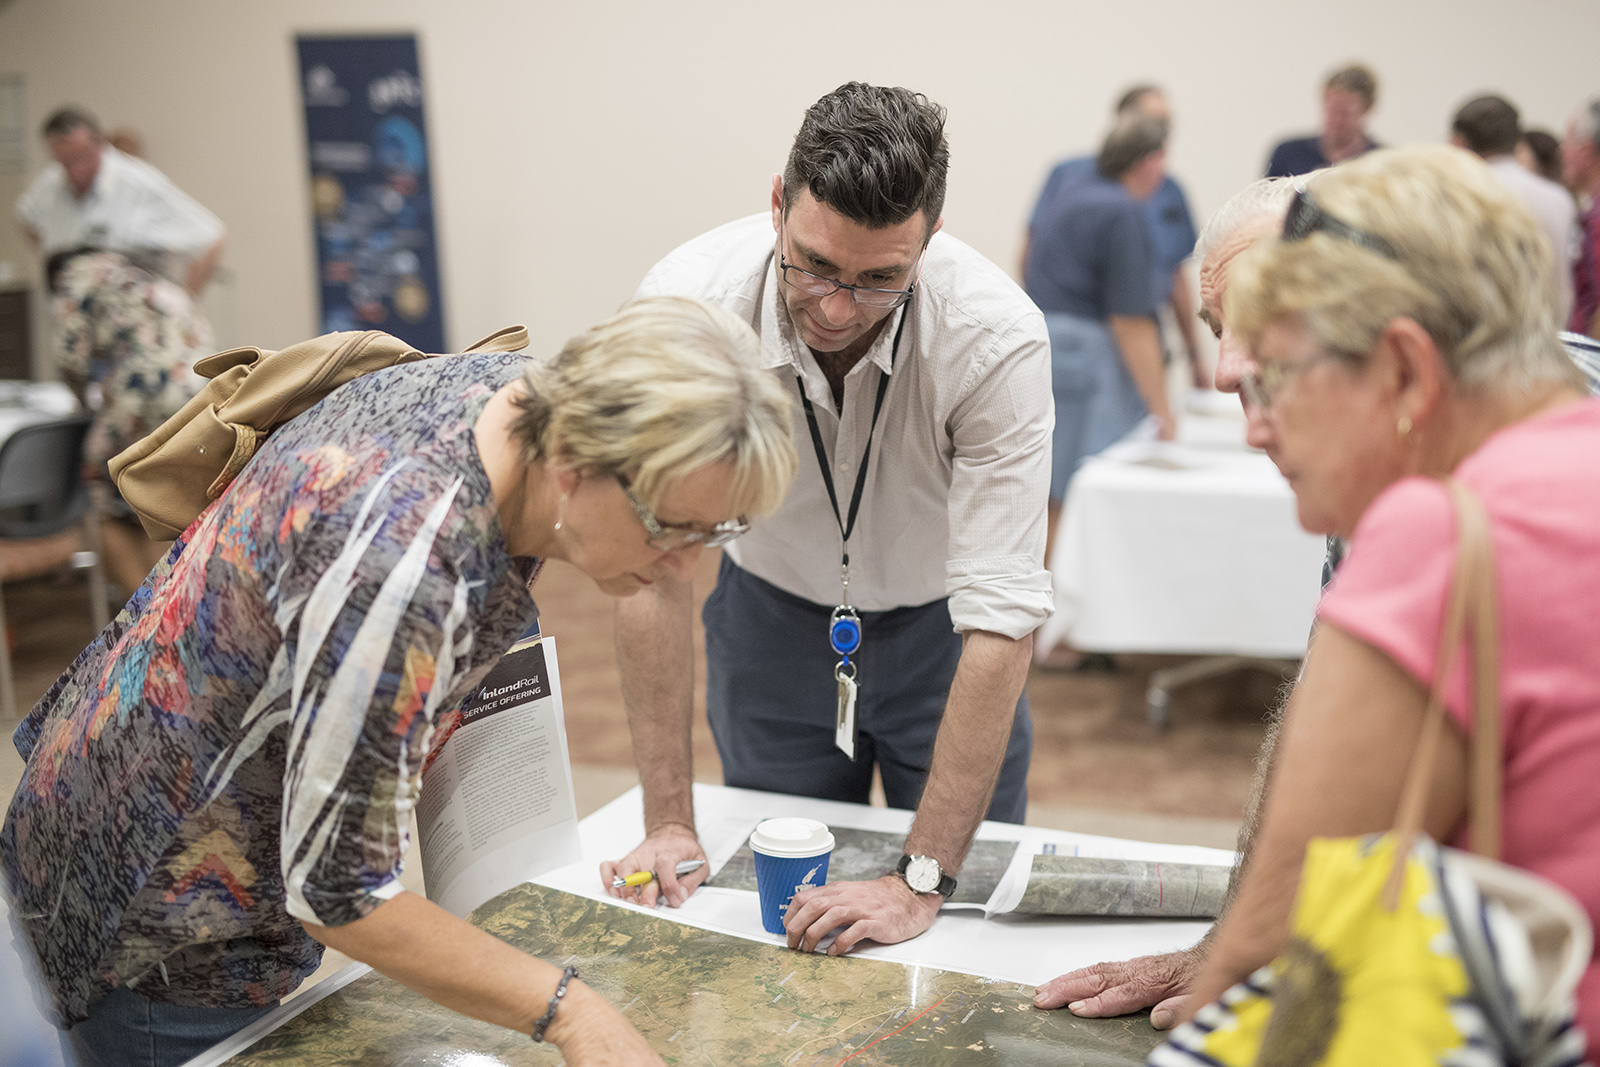 Community members are invited to take part in consultation sessions across the proposed alignment